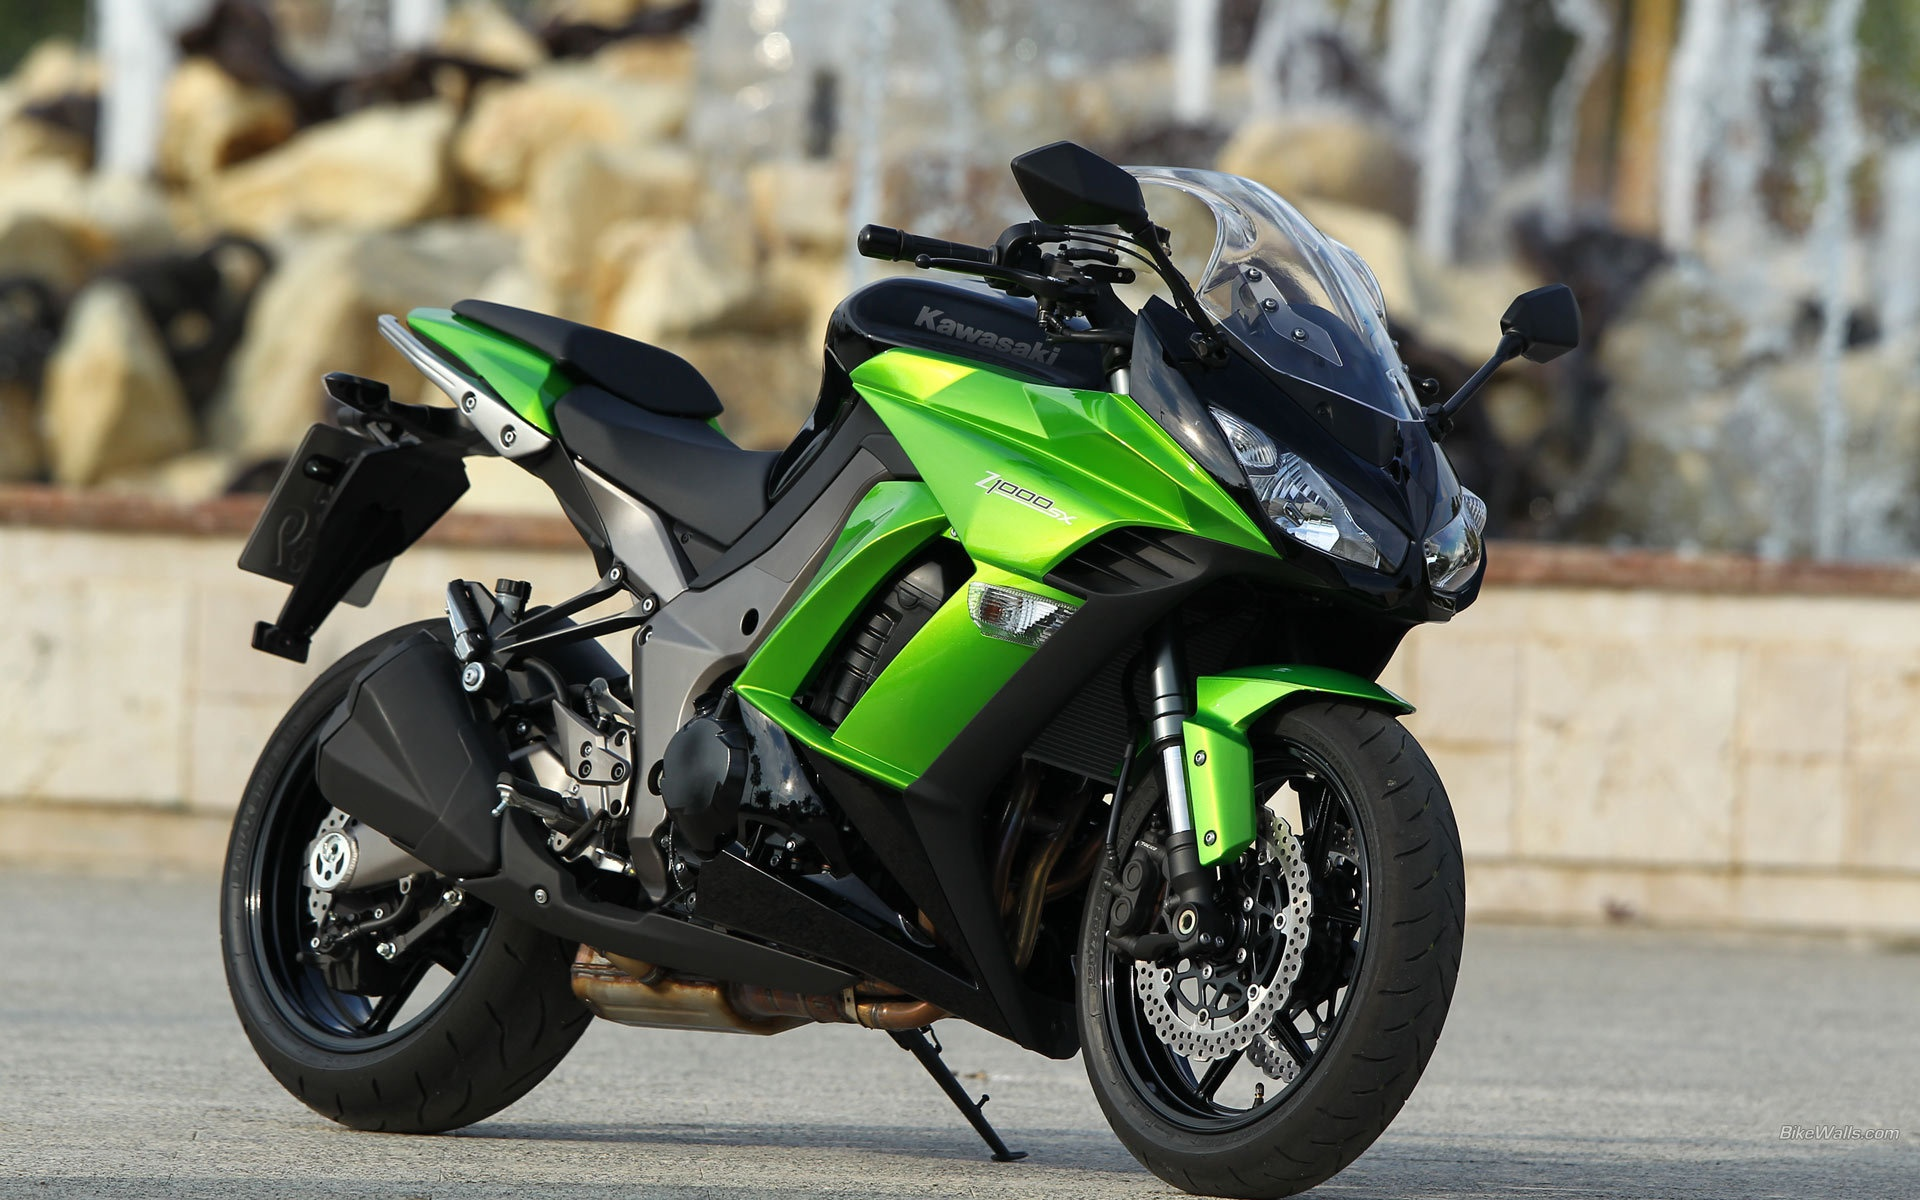 Kawasaki Z1000SX Wallpapers In Jpg Format For Free Download